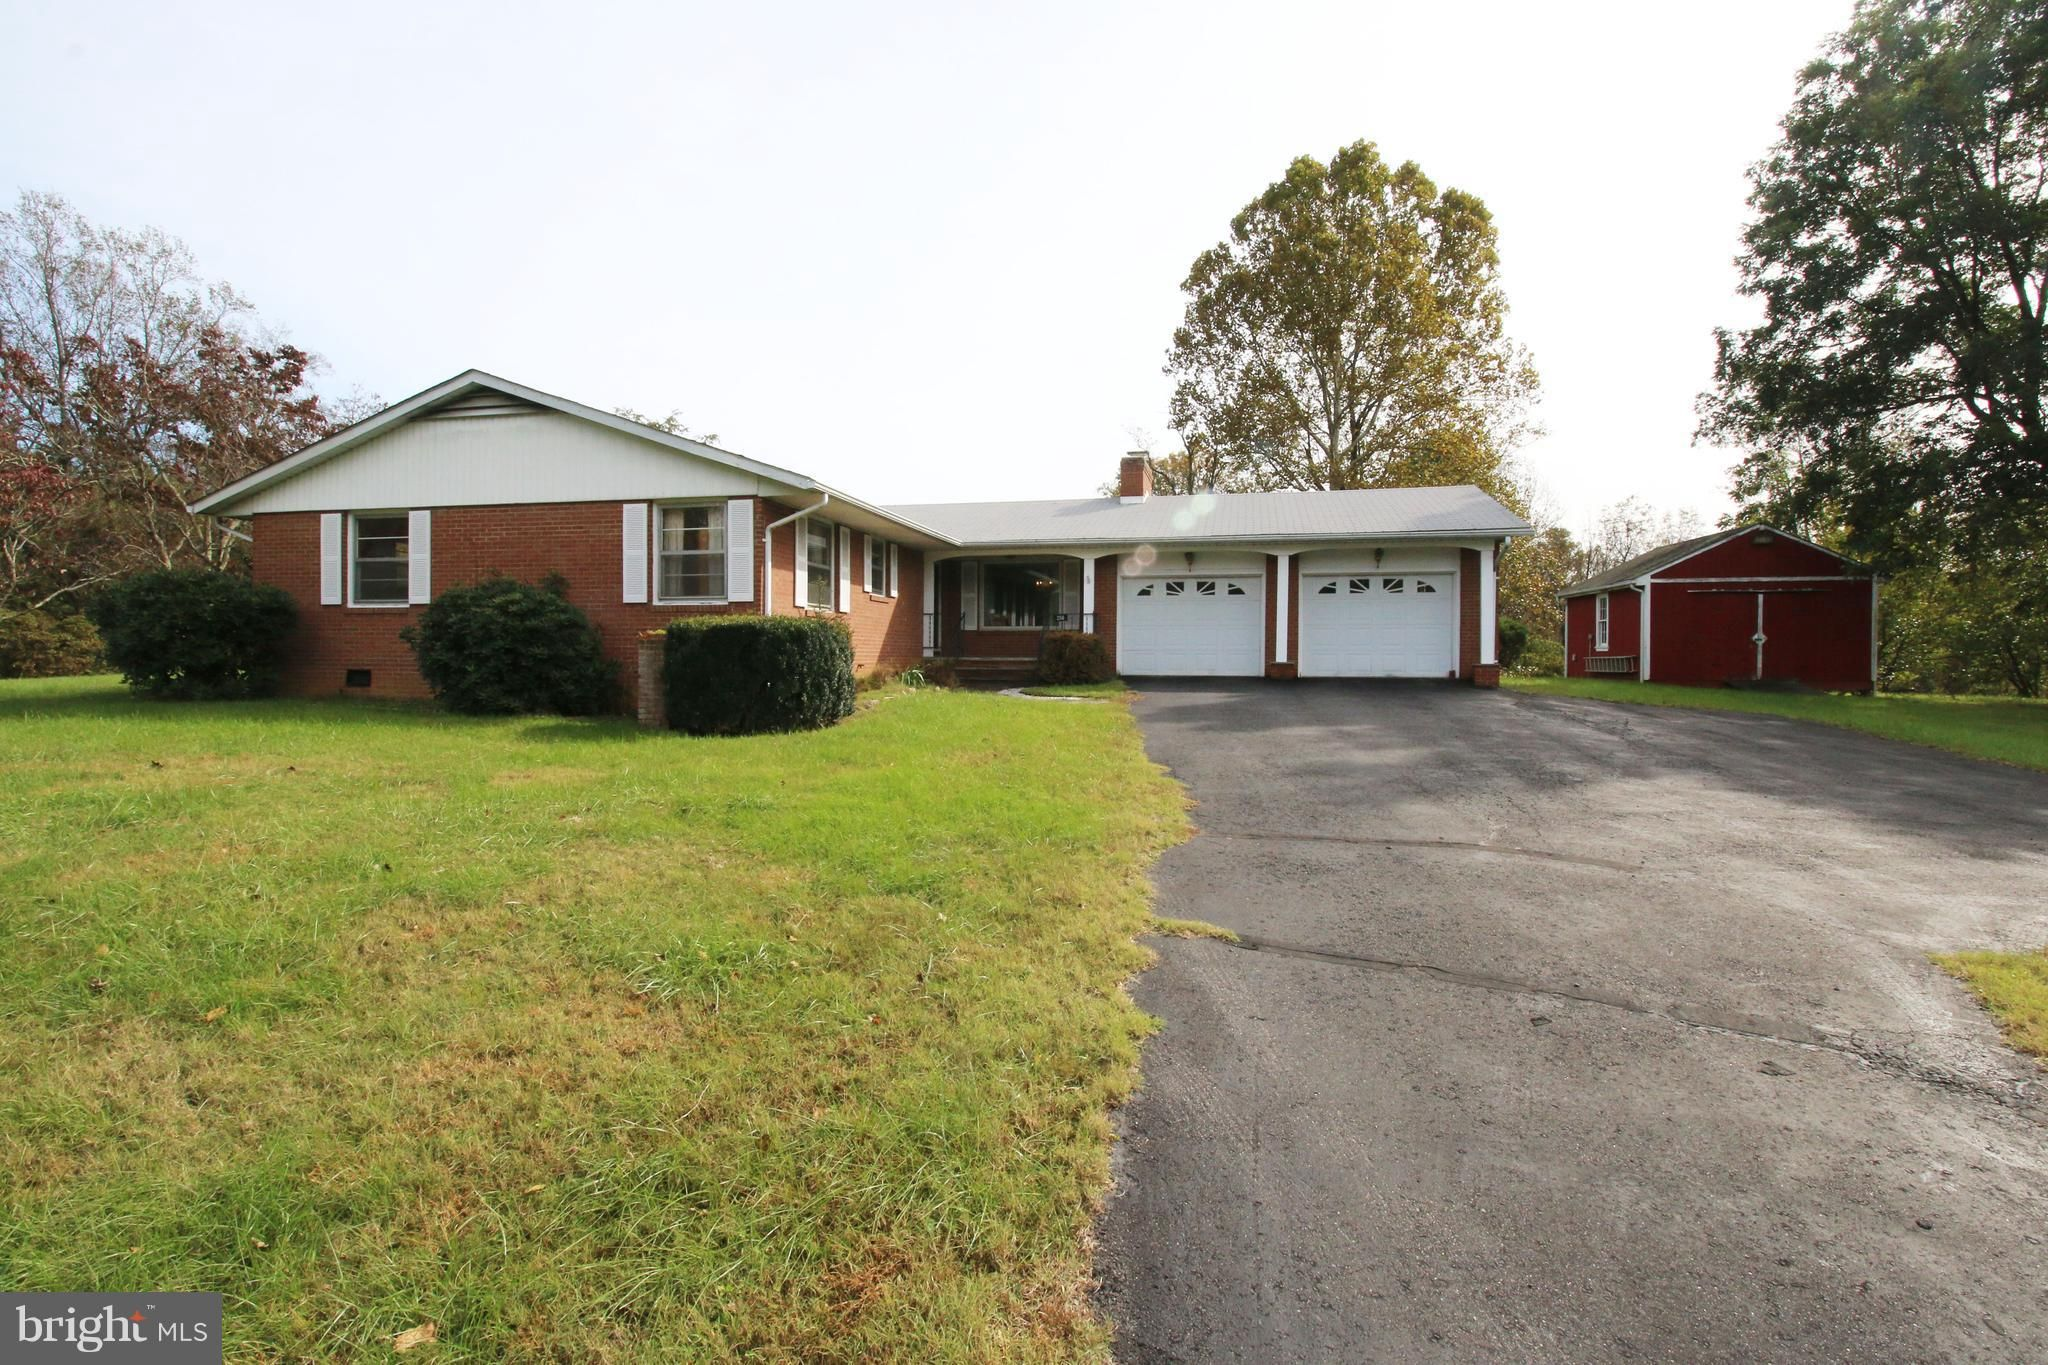 399 900 New Listing A Beautiful Home In A Peaceful Country